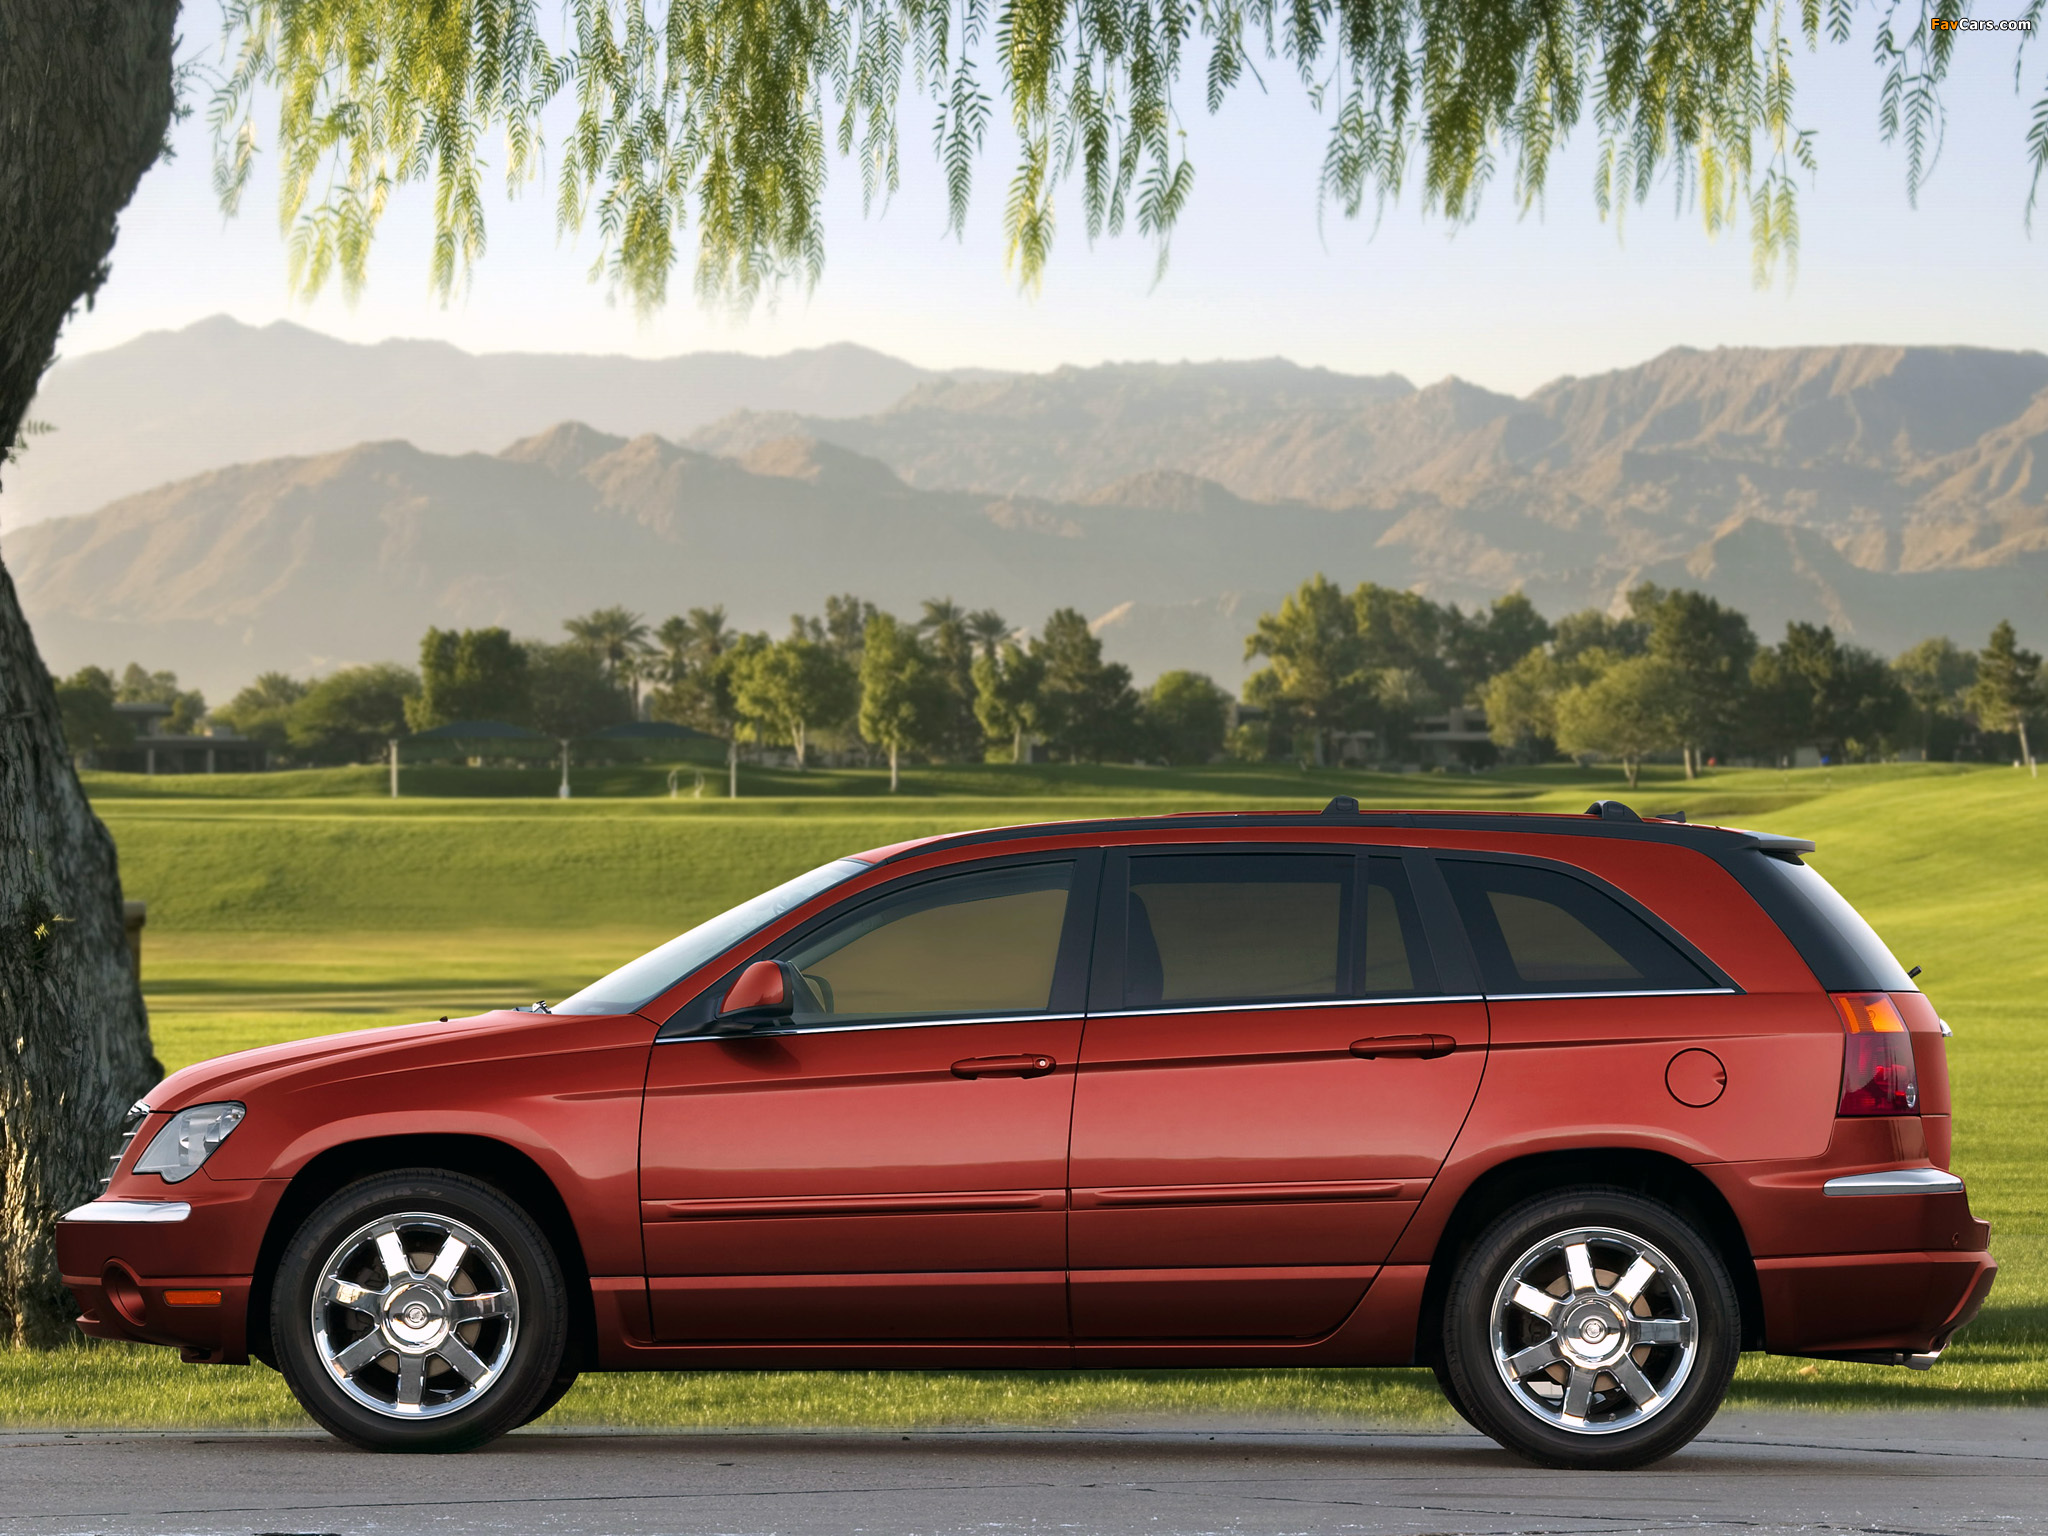 chrysler pacifica pictures posters news and videos on your pursuit hobbies interests and. Black Bedroom Furniture Sets. Home Design Ideas